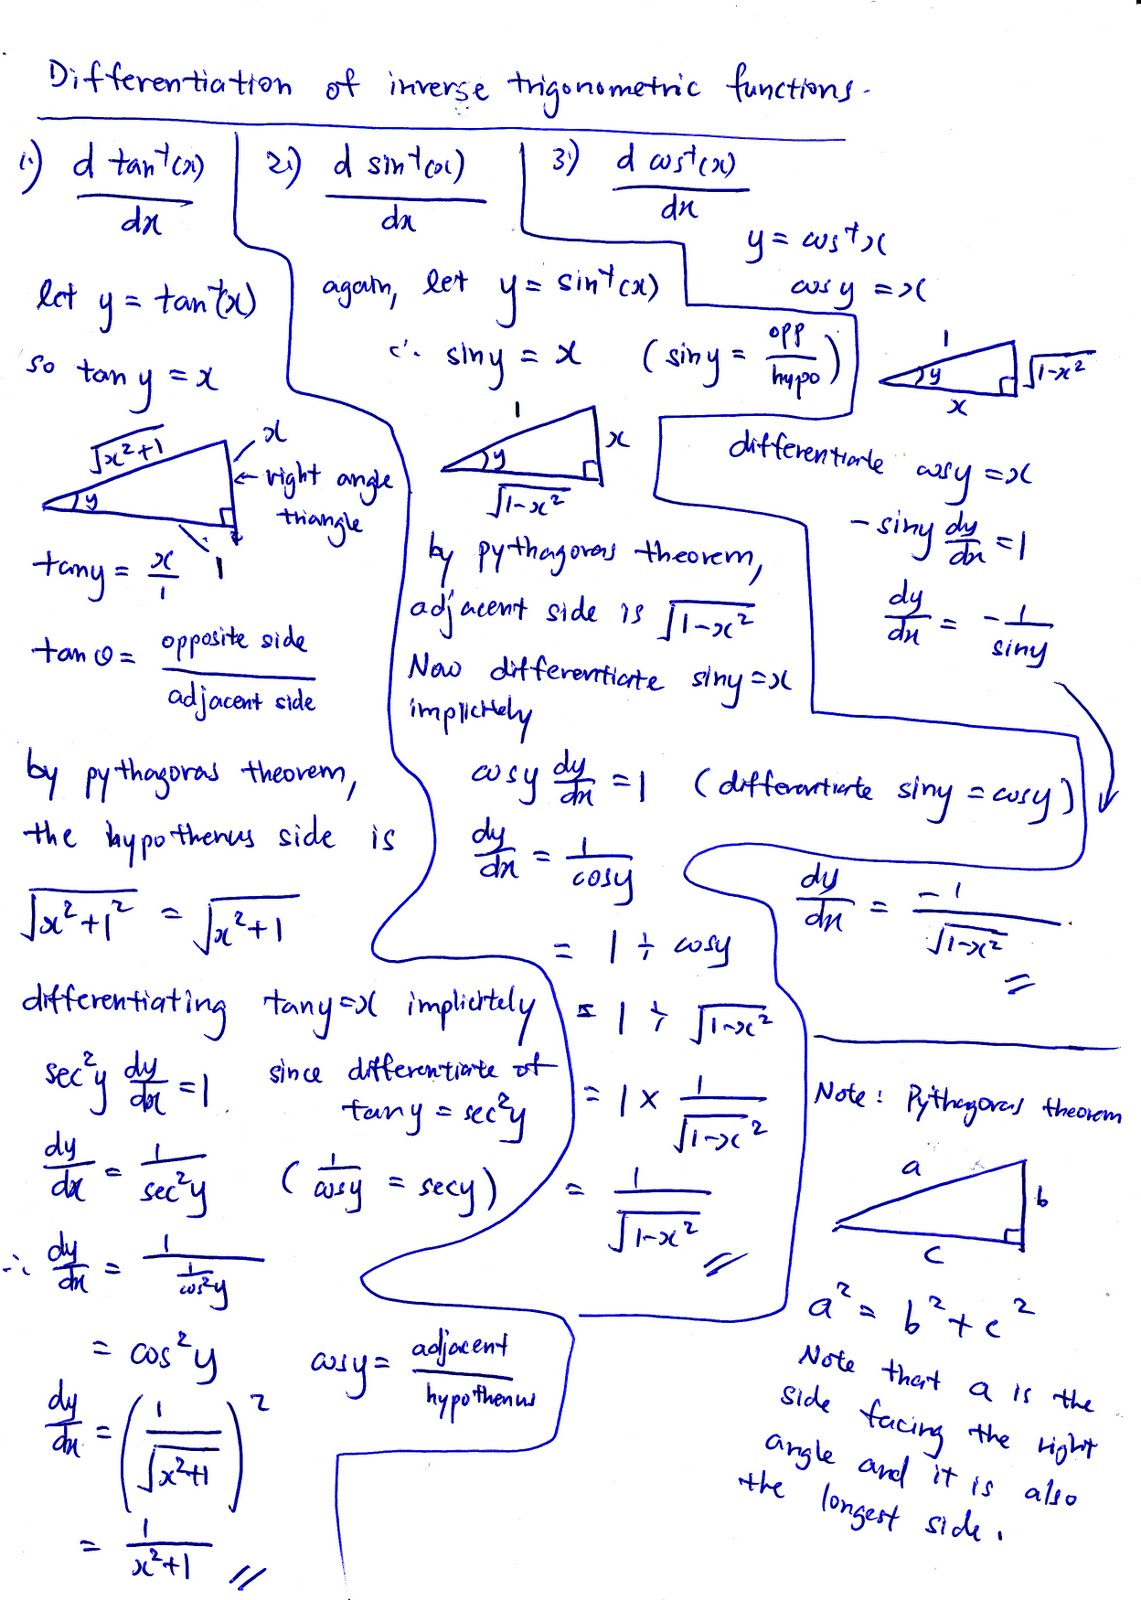 The Maths Clinic Differentiation Of Inverse Trigonometric Functions